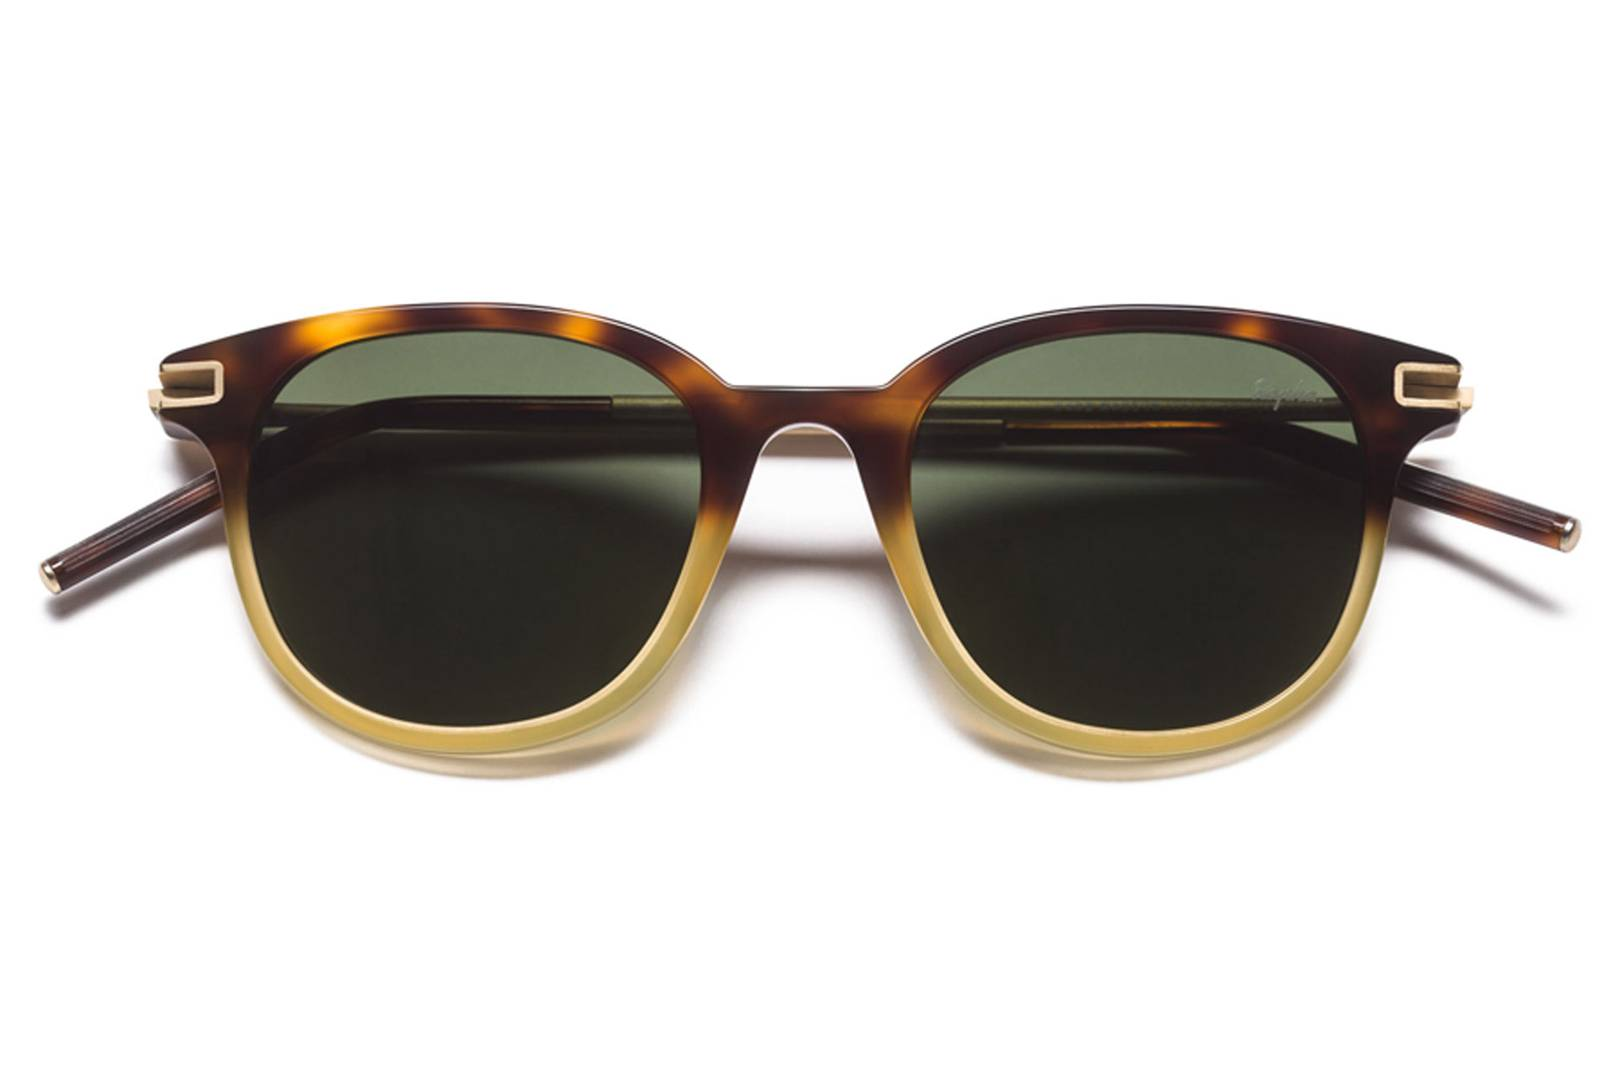 53f30458ed8 Nike collaboration and Rapha sunglasses  some of the coolest items in the  world this week